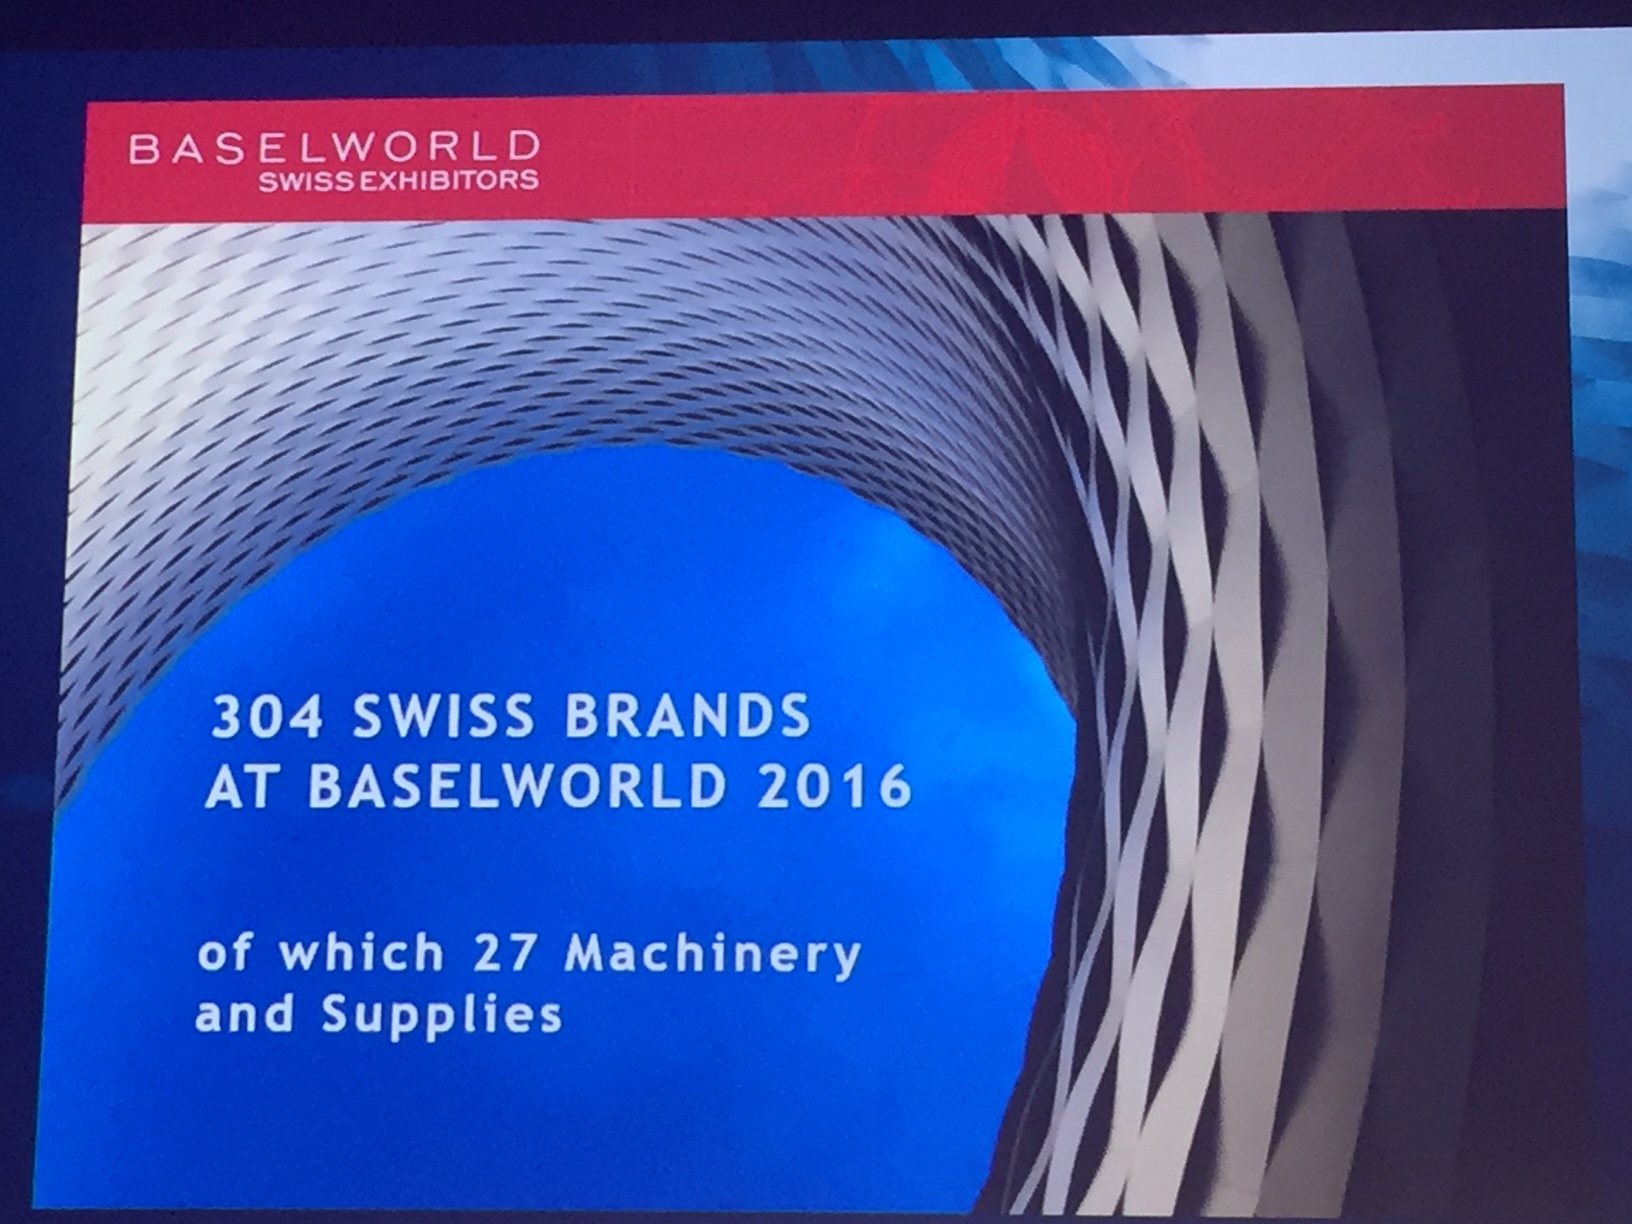 Baselworld-2016-press-prensa-conferencia-economia-relojes 1